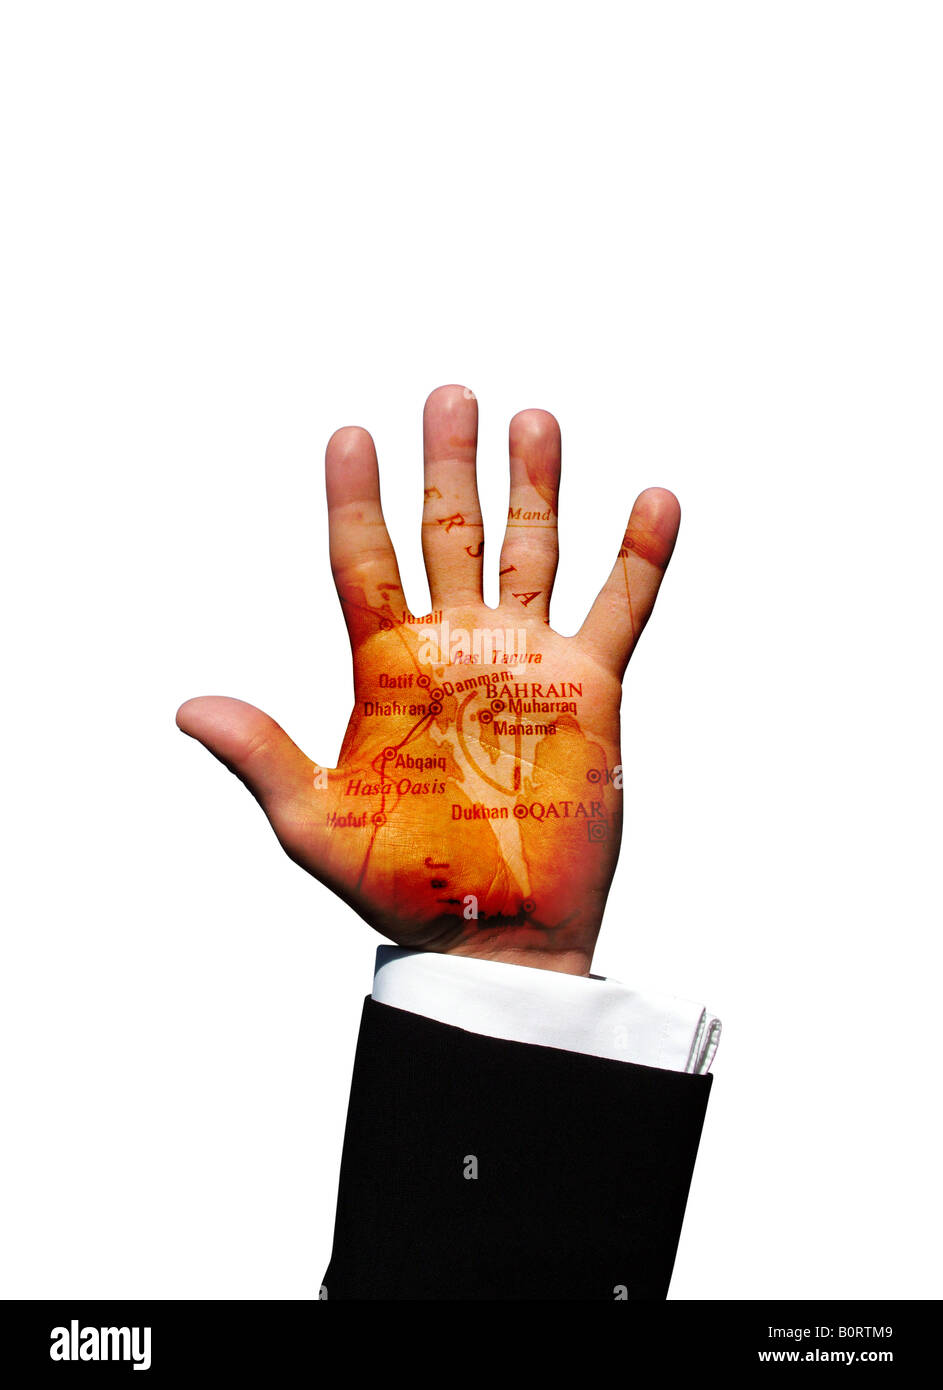 Bahrain map on palm of businessman hand in air - Stock Image